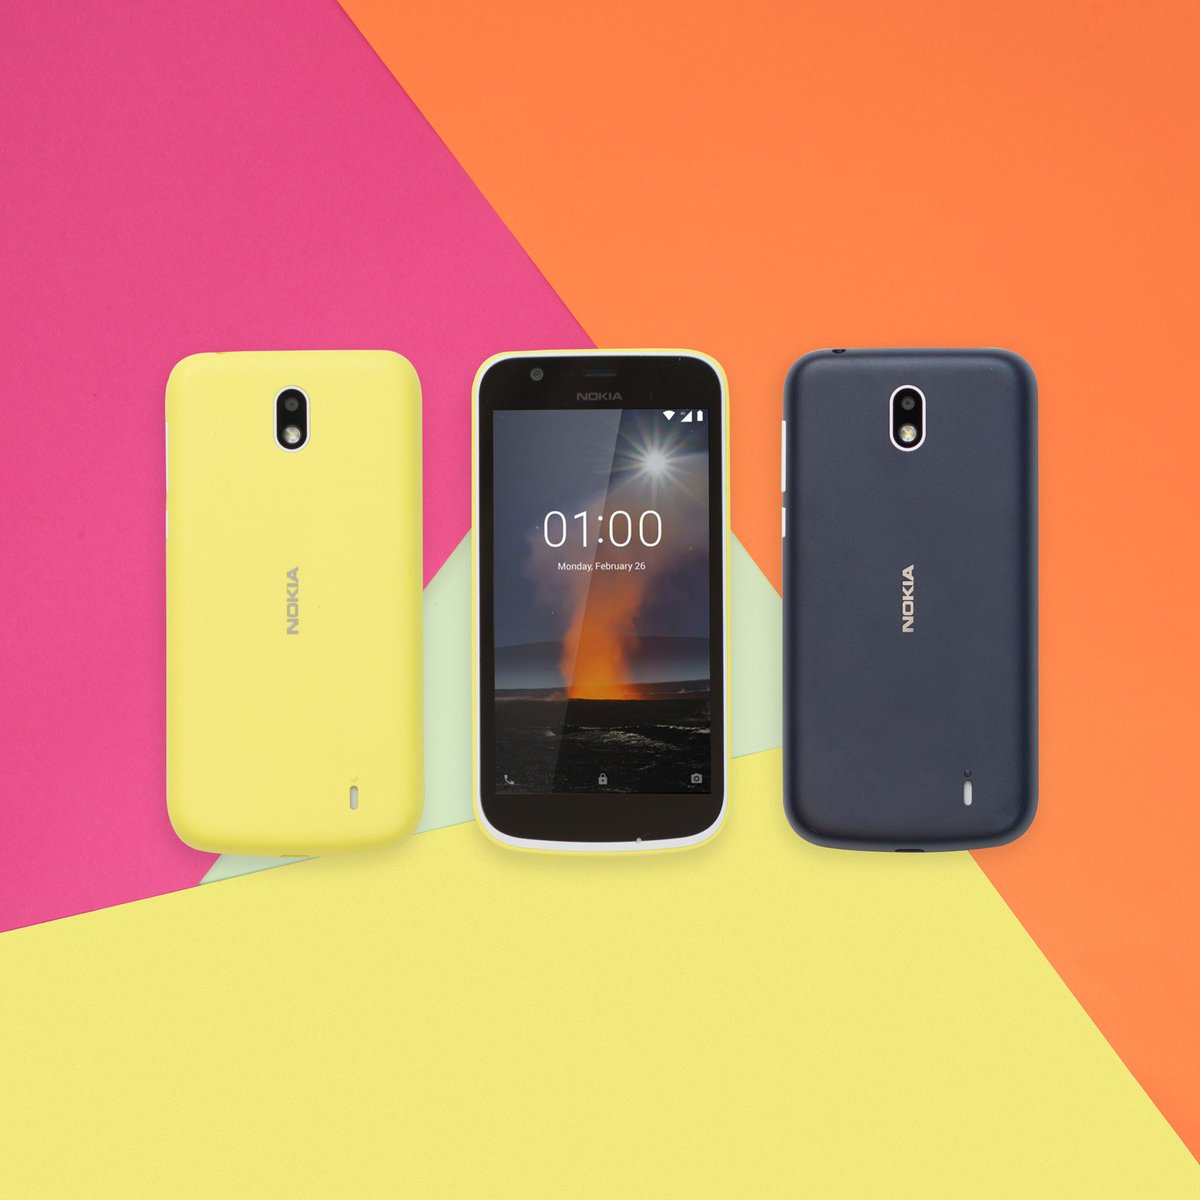 Start Living Life In Color Make The Ultimate Style Statement With Nokia1 And Xpress On Covers Pictwitter O1G5LSmn6k